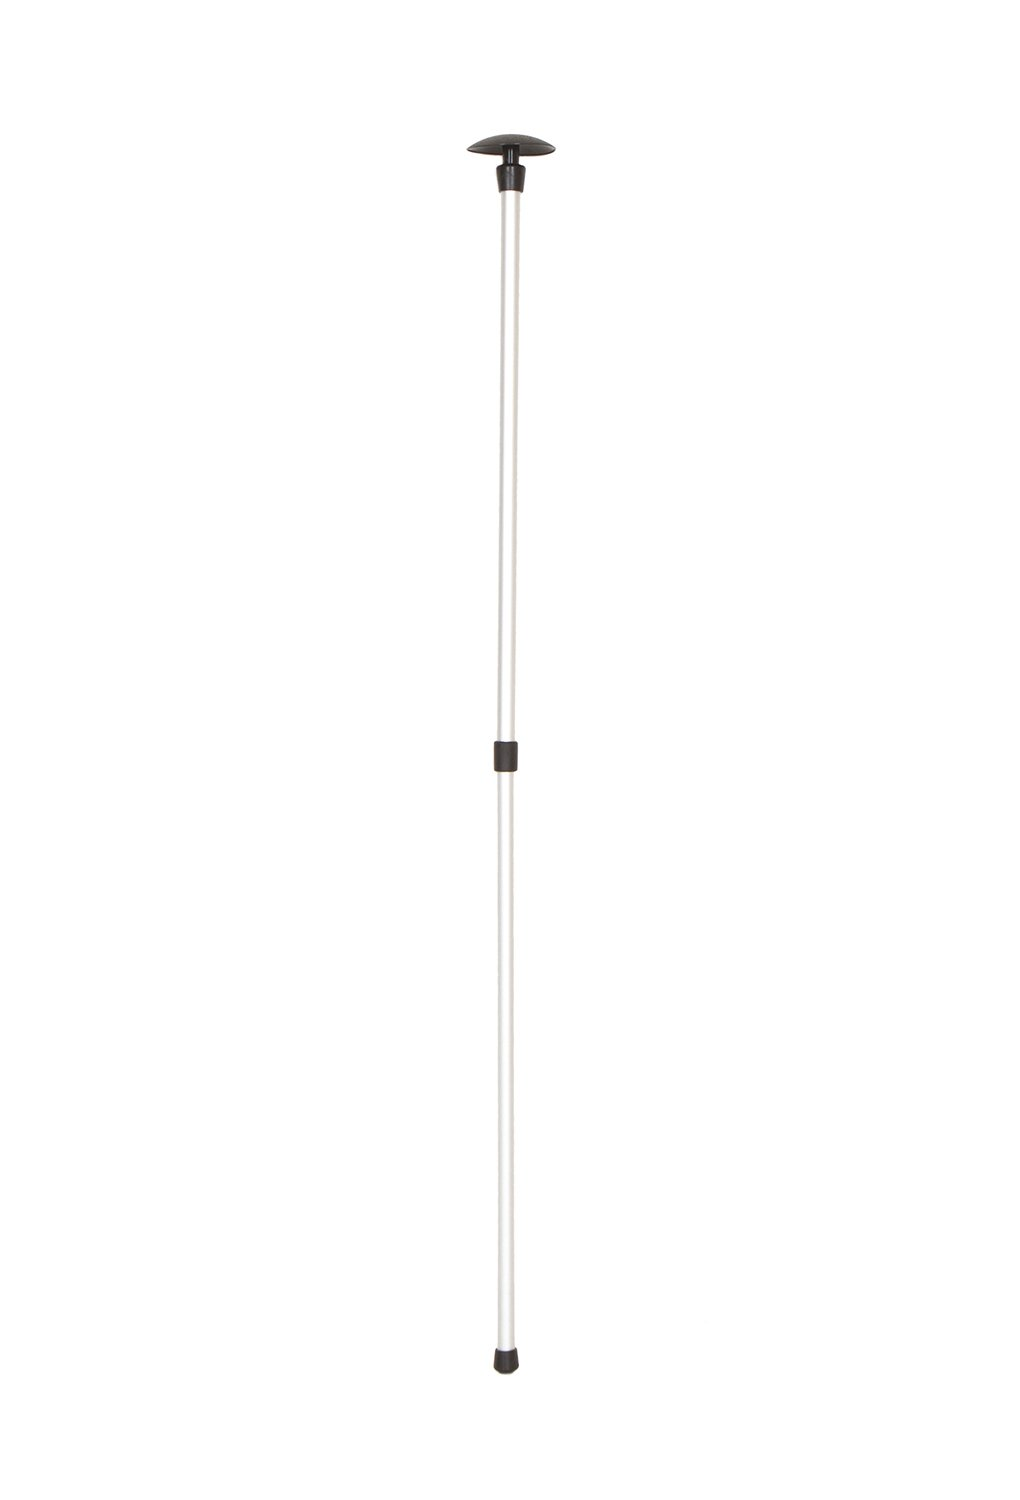 """Redneck Convent Telescopic Boat Cover Support Adjustable Pole System 28.5/"""" to 51.25/"""" Inches Repels Water and Debris on Any Marine Boat"""